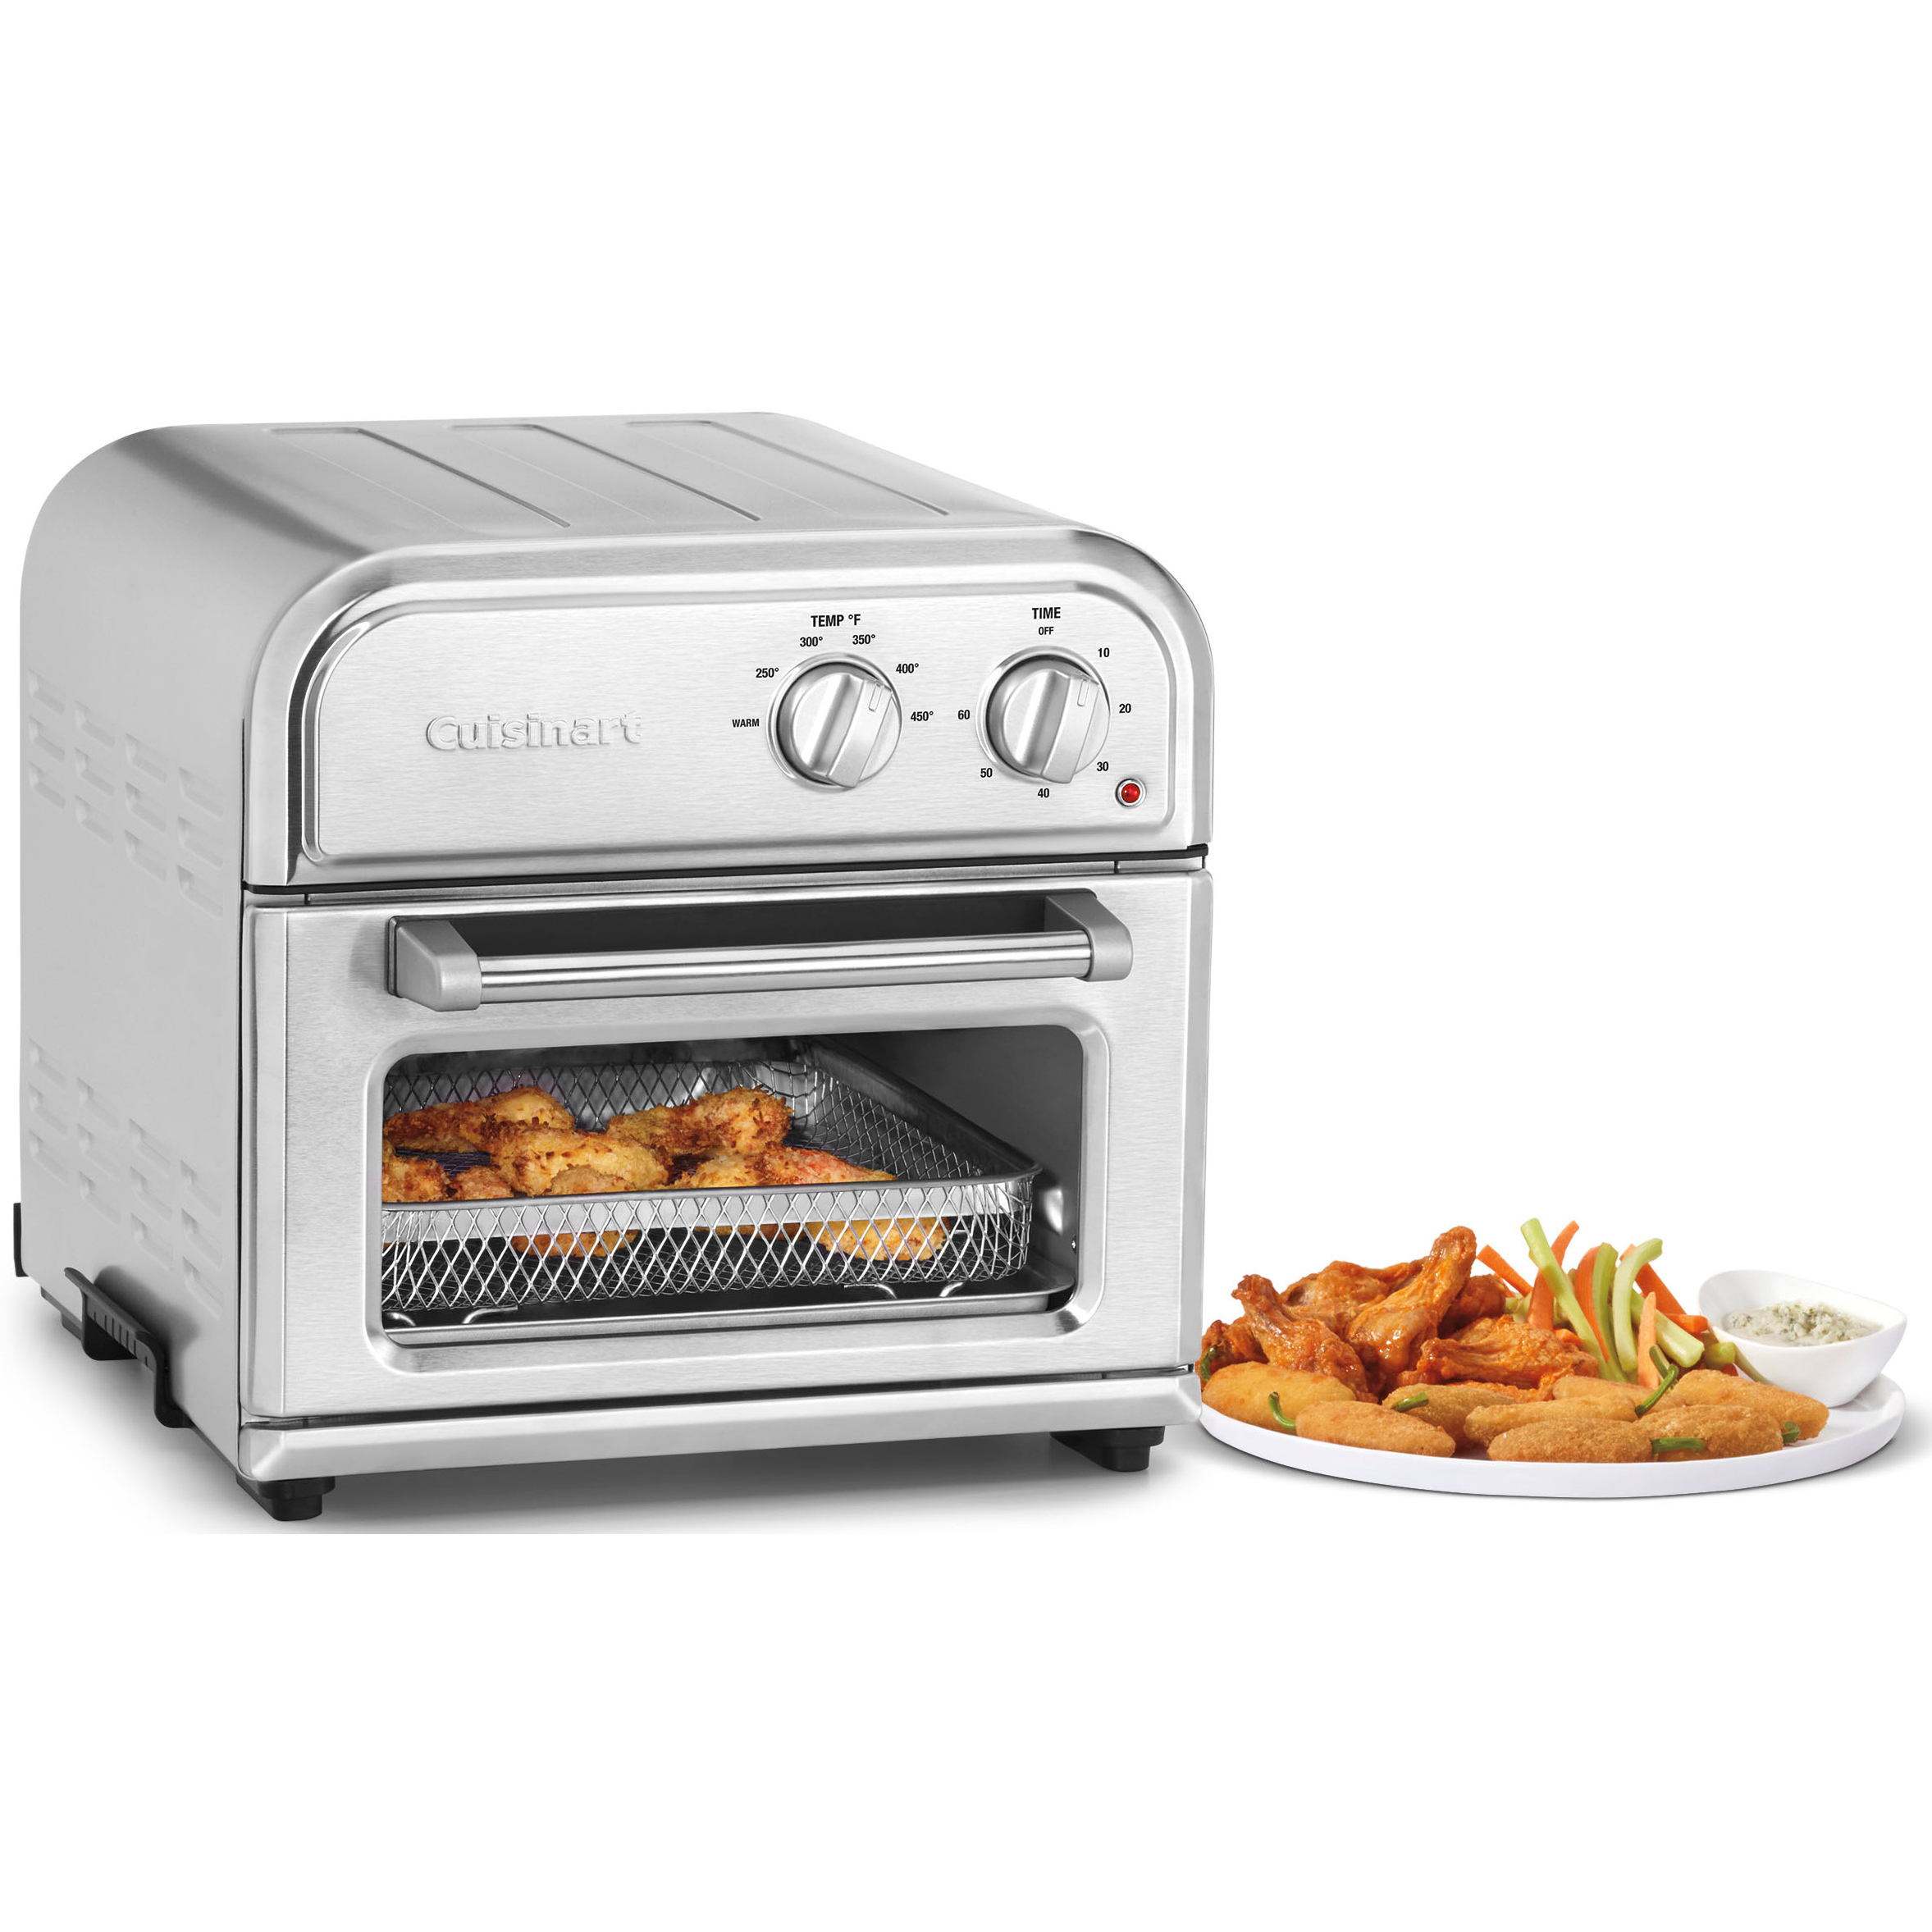 Cuisinart Afr25 High Efficiency Airfryer Stainless Steel